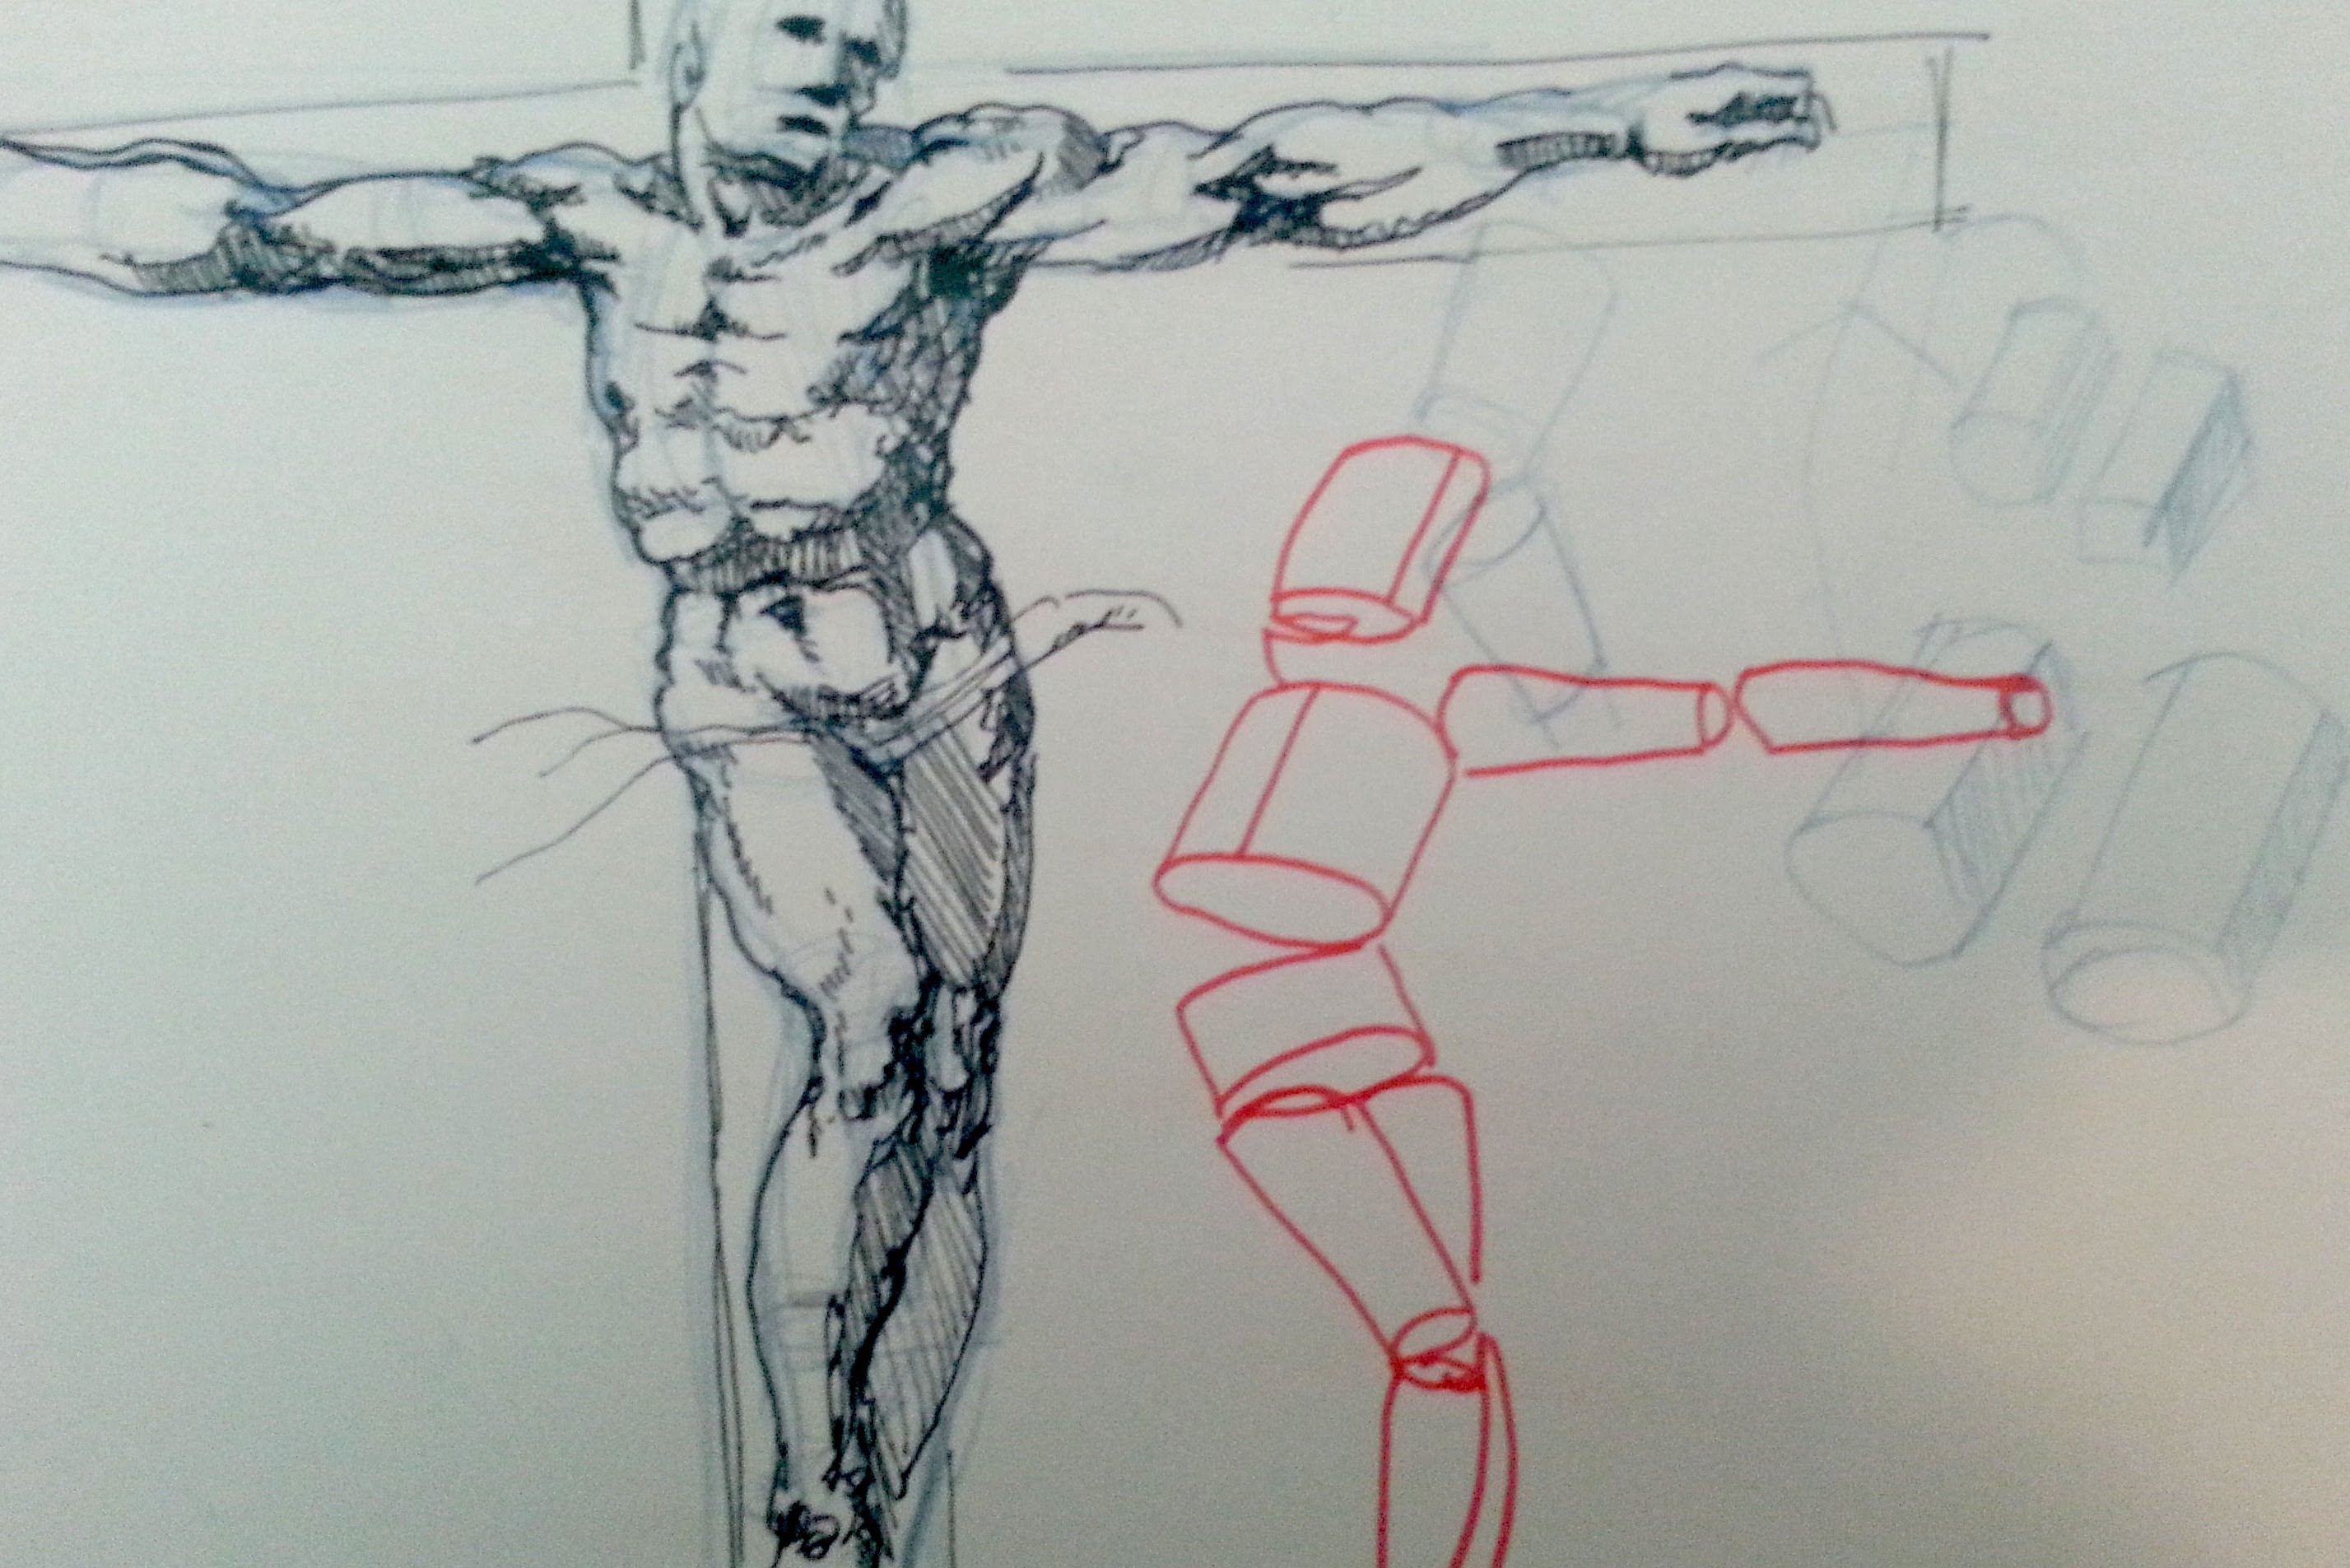 2855x1905 Pen And Ink Drawing Tutorial How To Draw A Figure On A Cross